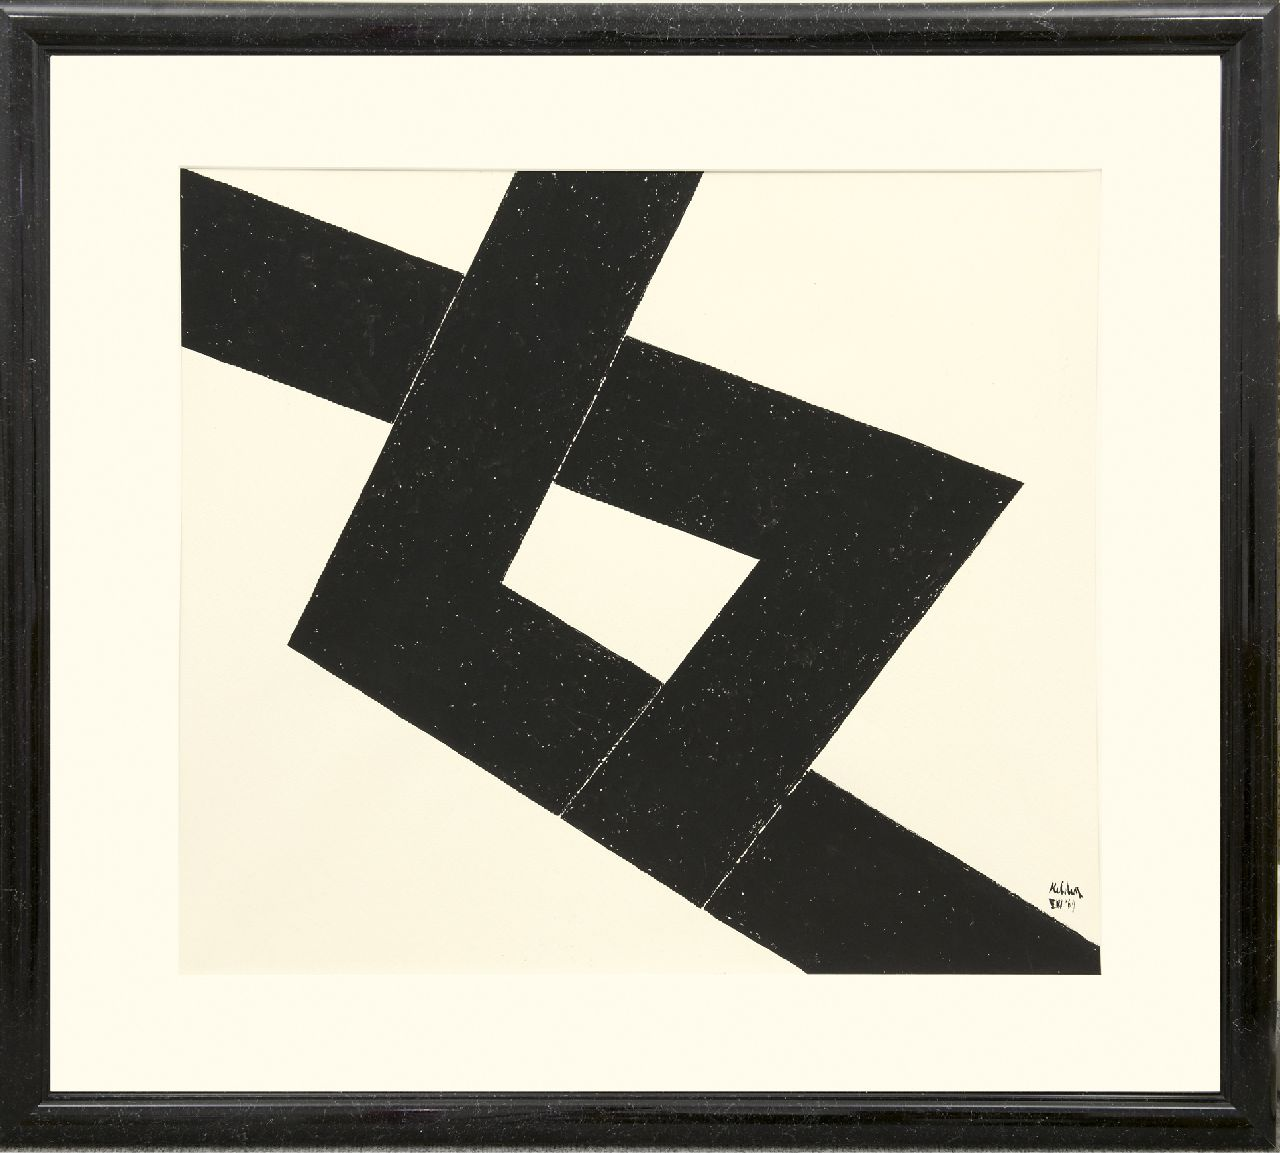 Kelder A.B.  | Antonius Bernardus 'Toon' Kelder | Watercolours and drawings offered for sale | Abstract composition, Indian ink on paper 77.0 x 68.0 cm, signed l.r. and dated '69